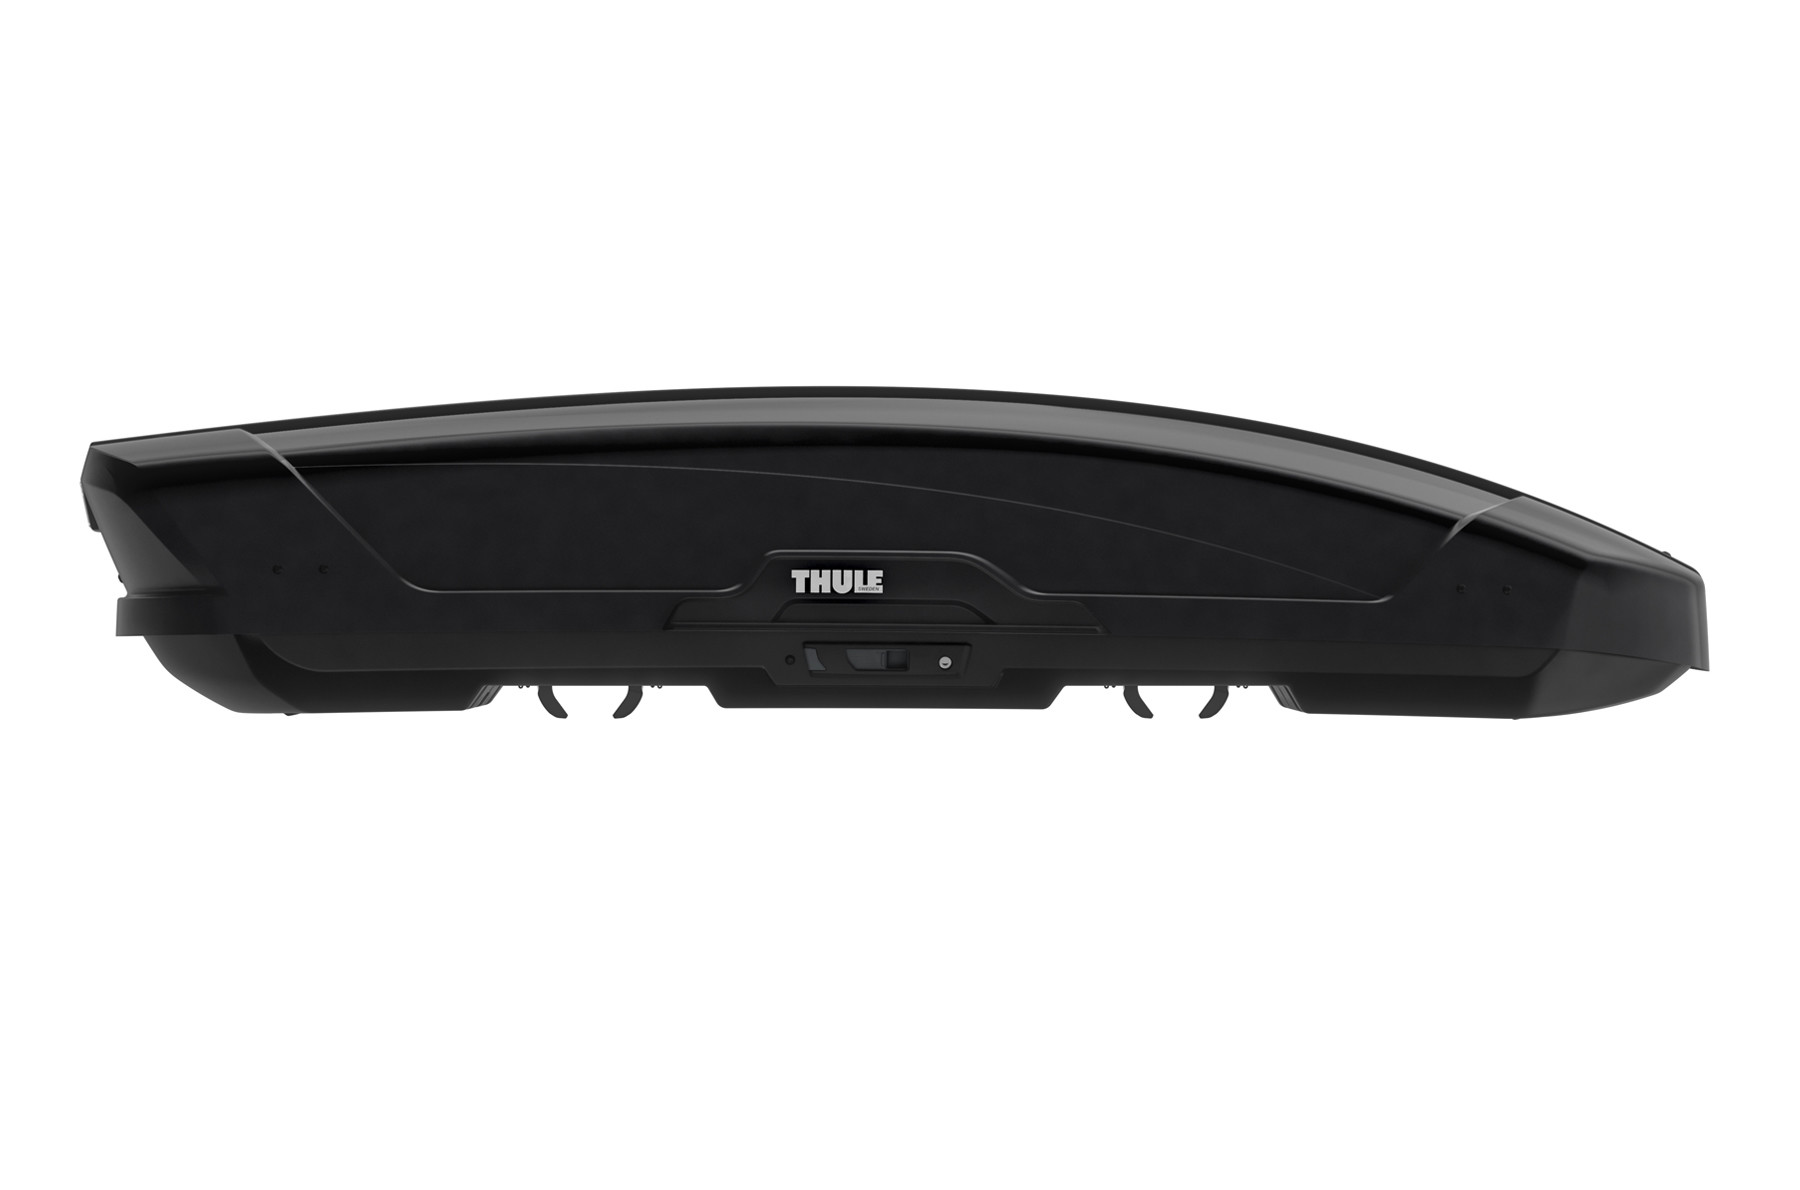 Thule Roof Boxes